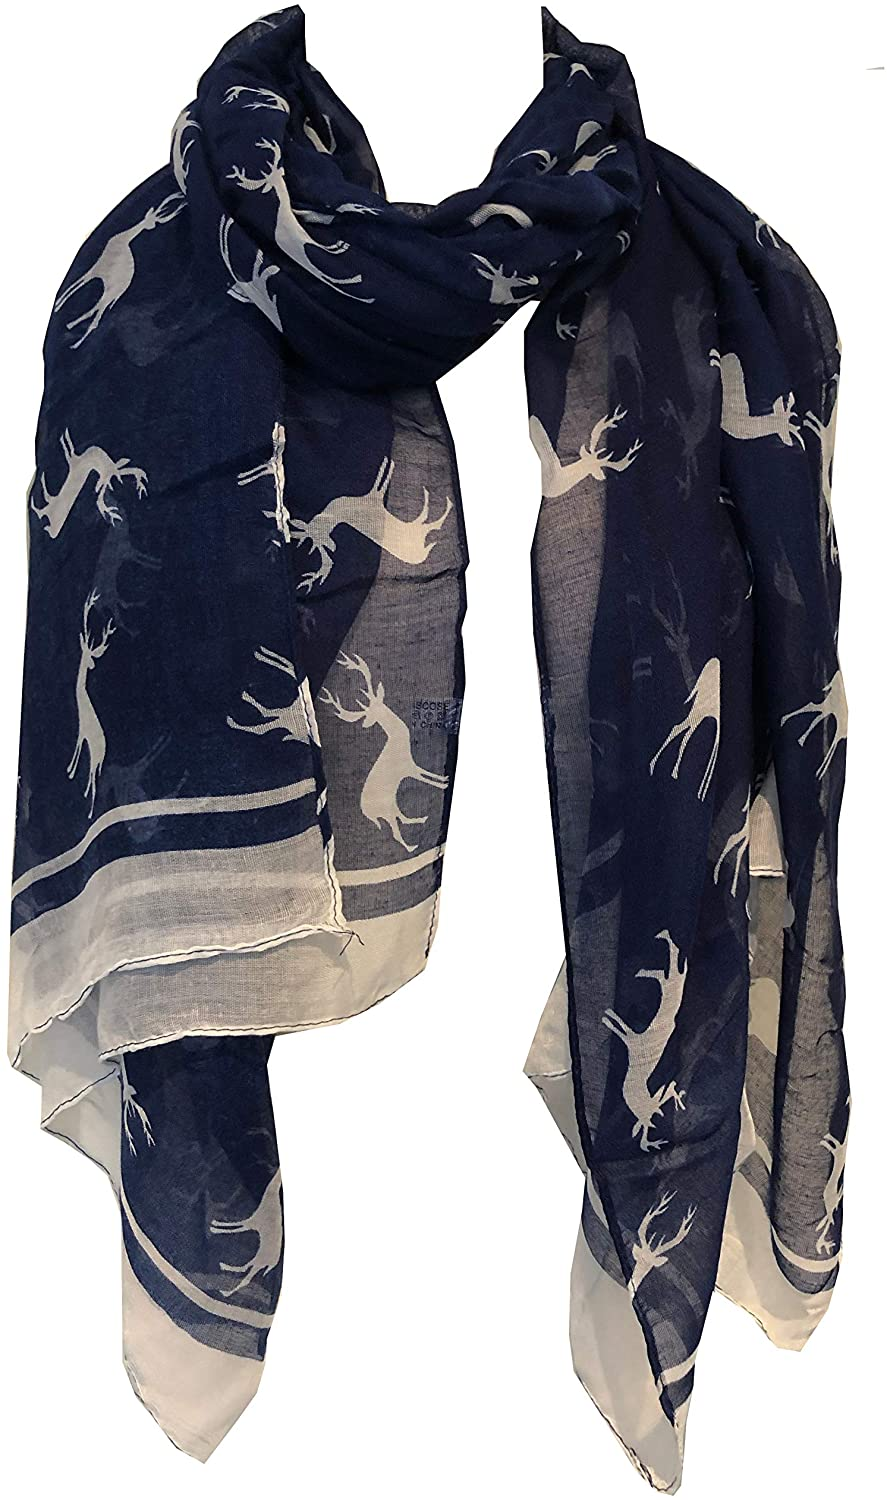 Pamper Yourself Now Blue with White Reindeer Design Scarf with Border. Lovely Long Soft Scarf Fantastic Gift